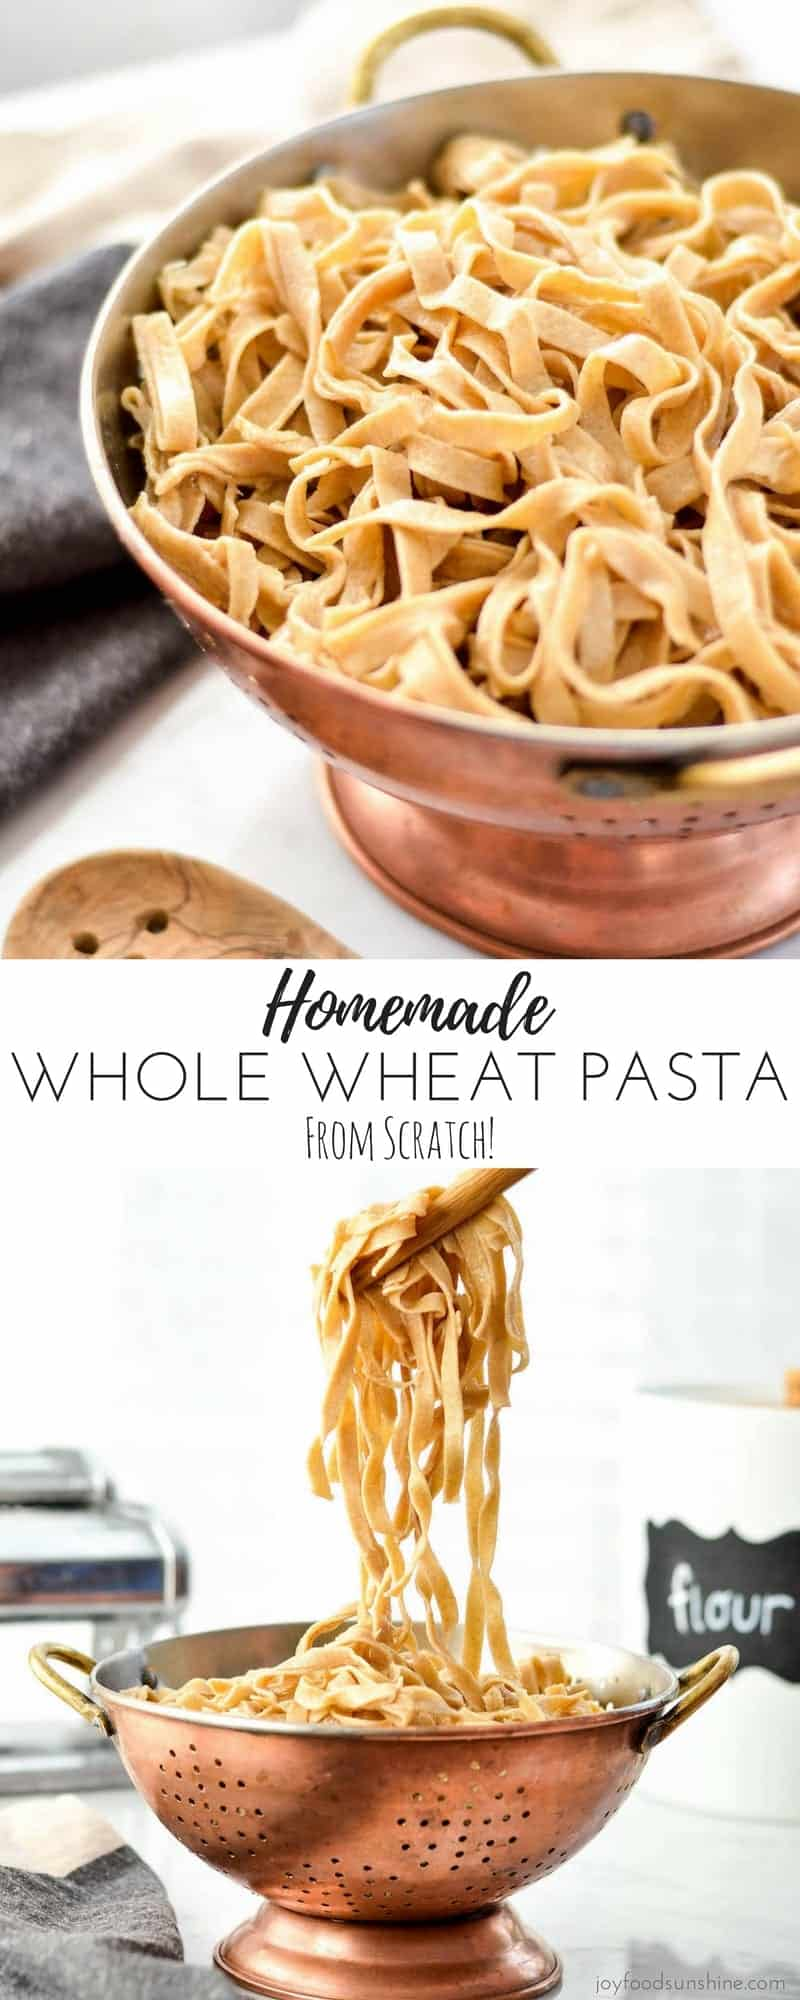 This Homemade Whole Wheat Pasta recipe makes the best noodles completely from scratch! Make a yummy main dish or side dish with this healthier pasta that tastes SO much better than boxed varieties!